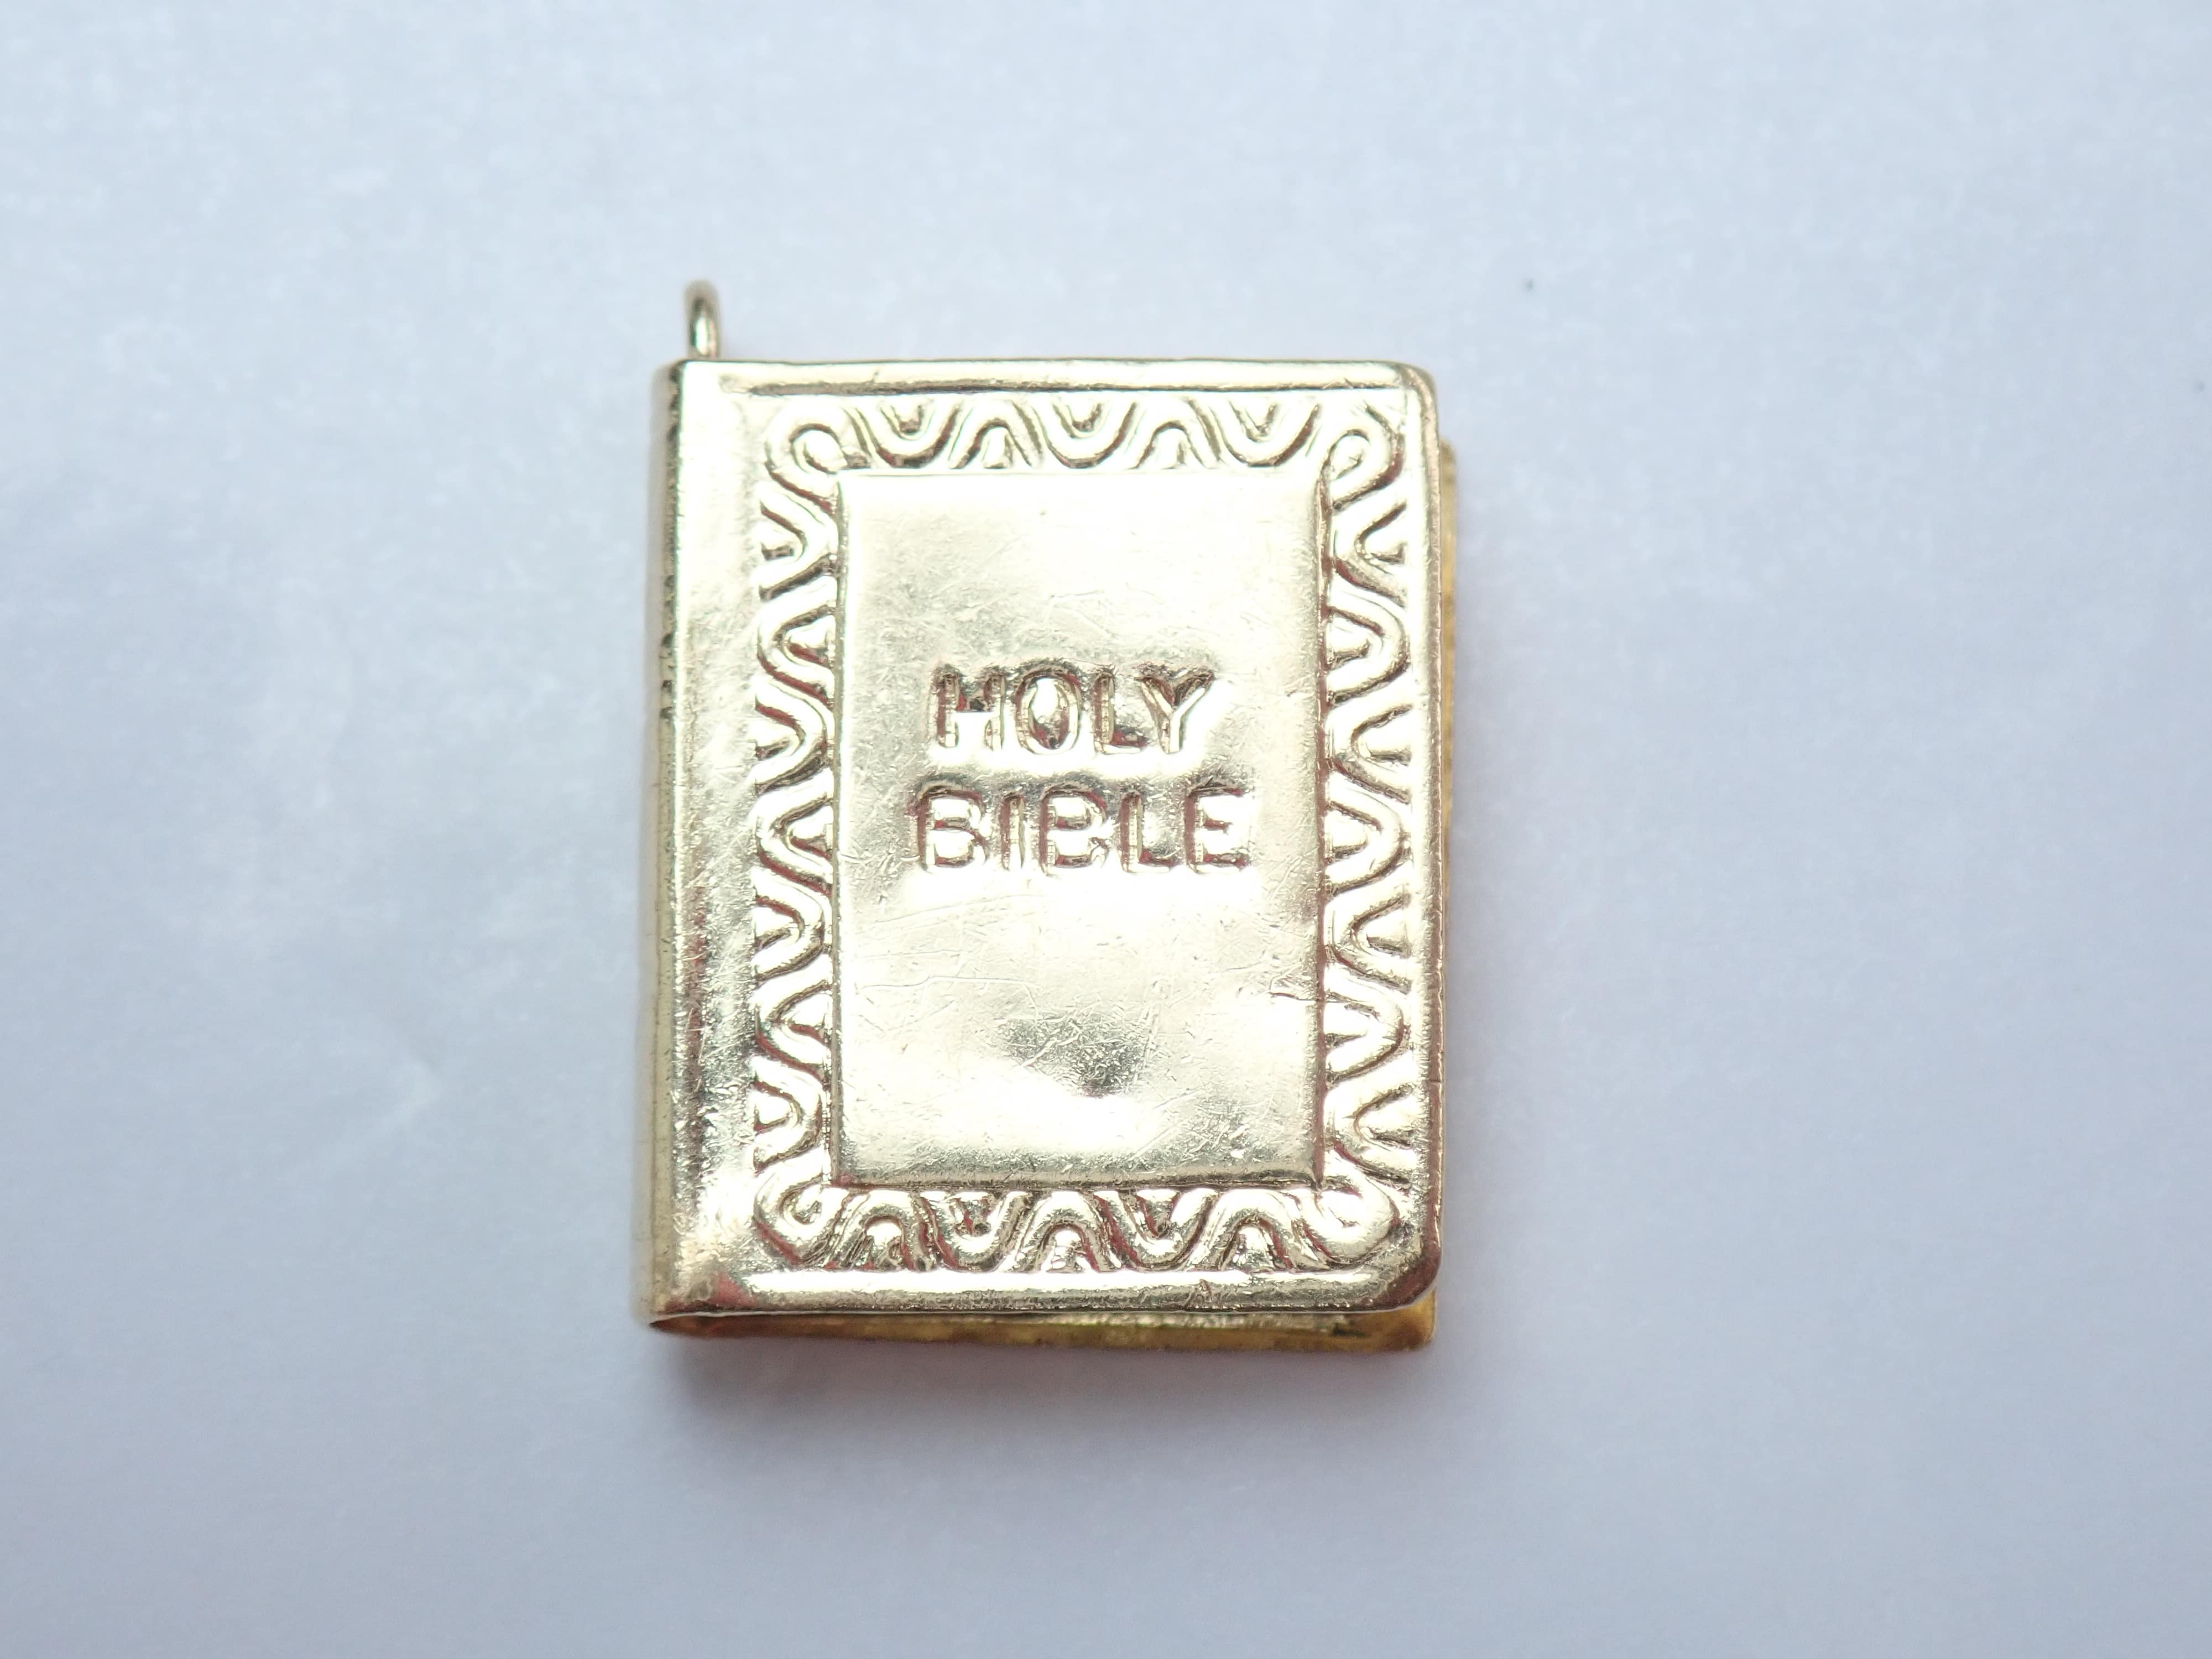 375 Yellow Gold 9ct Holy Bible Pendant Charm -1.36gms #26